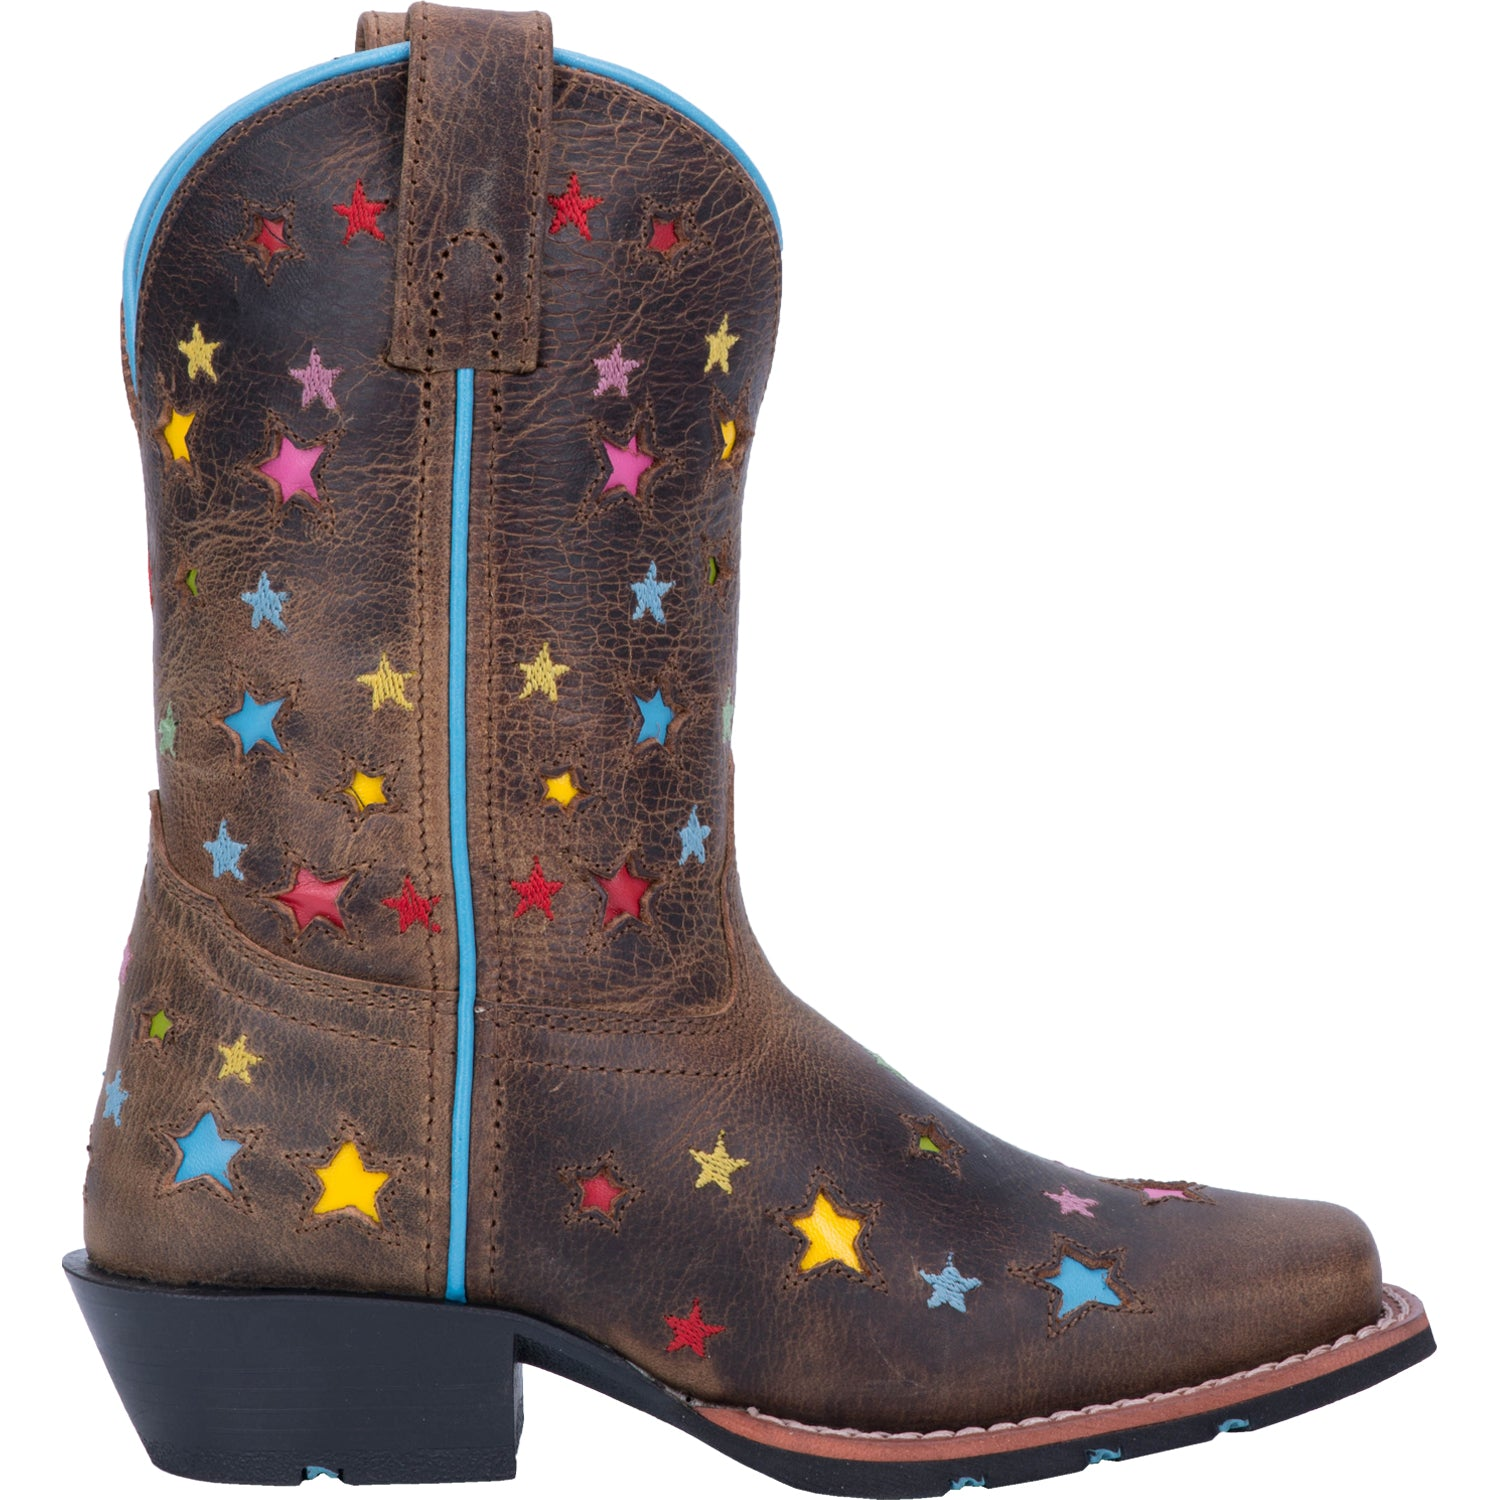 STARLETT LEATHER CHILDREN'S BOOT 4197205016618